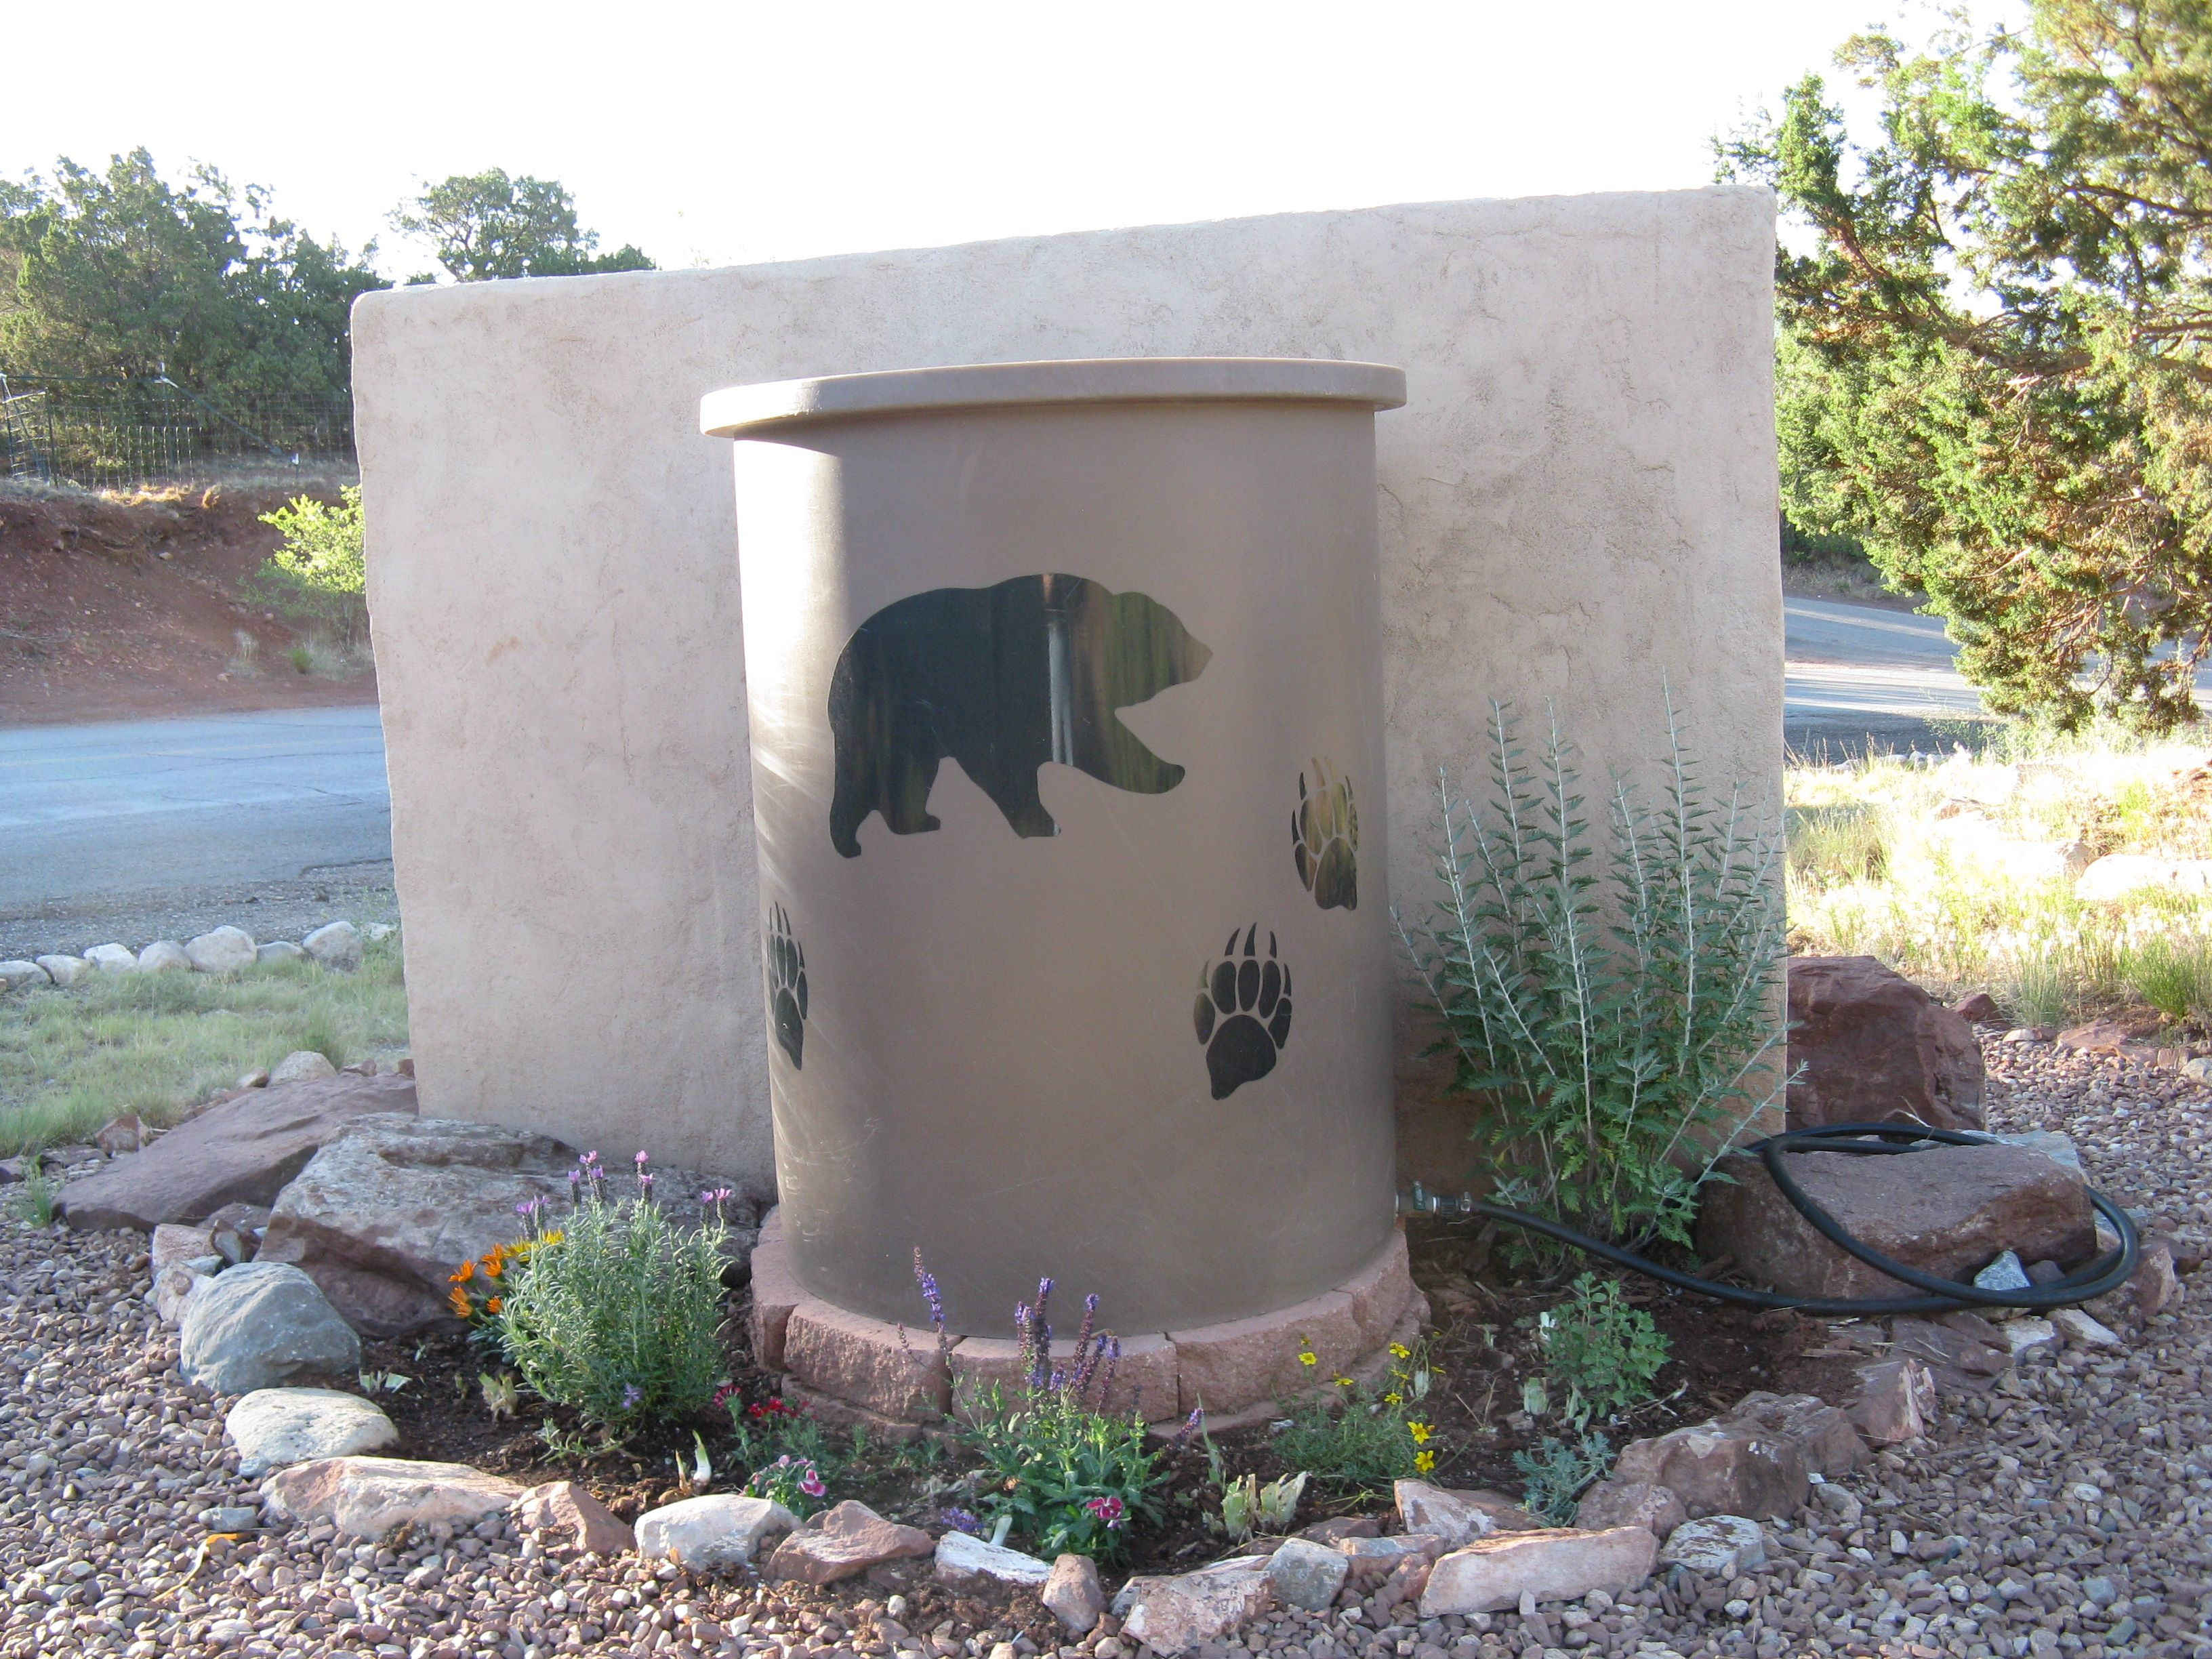 This Remote Tank Manufactured By Desert Plastics Is In A Great Location The Water Captured Can Be Used To Care For Water Barrel Rain Water Barrel Rain Barrel